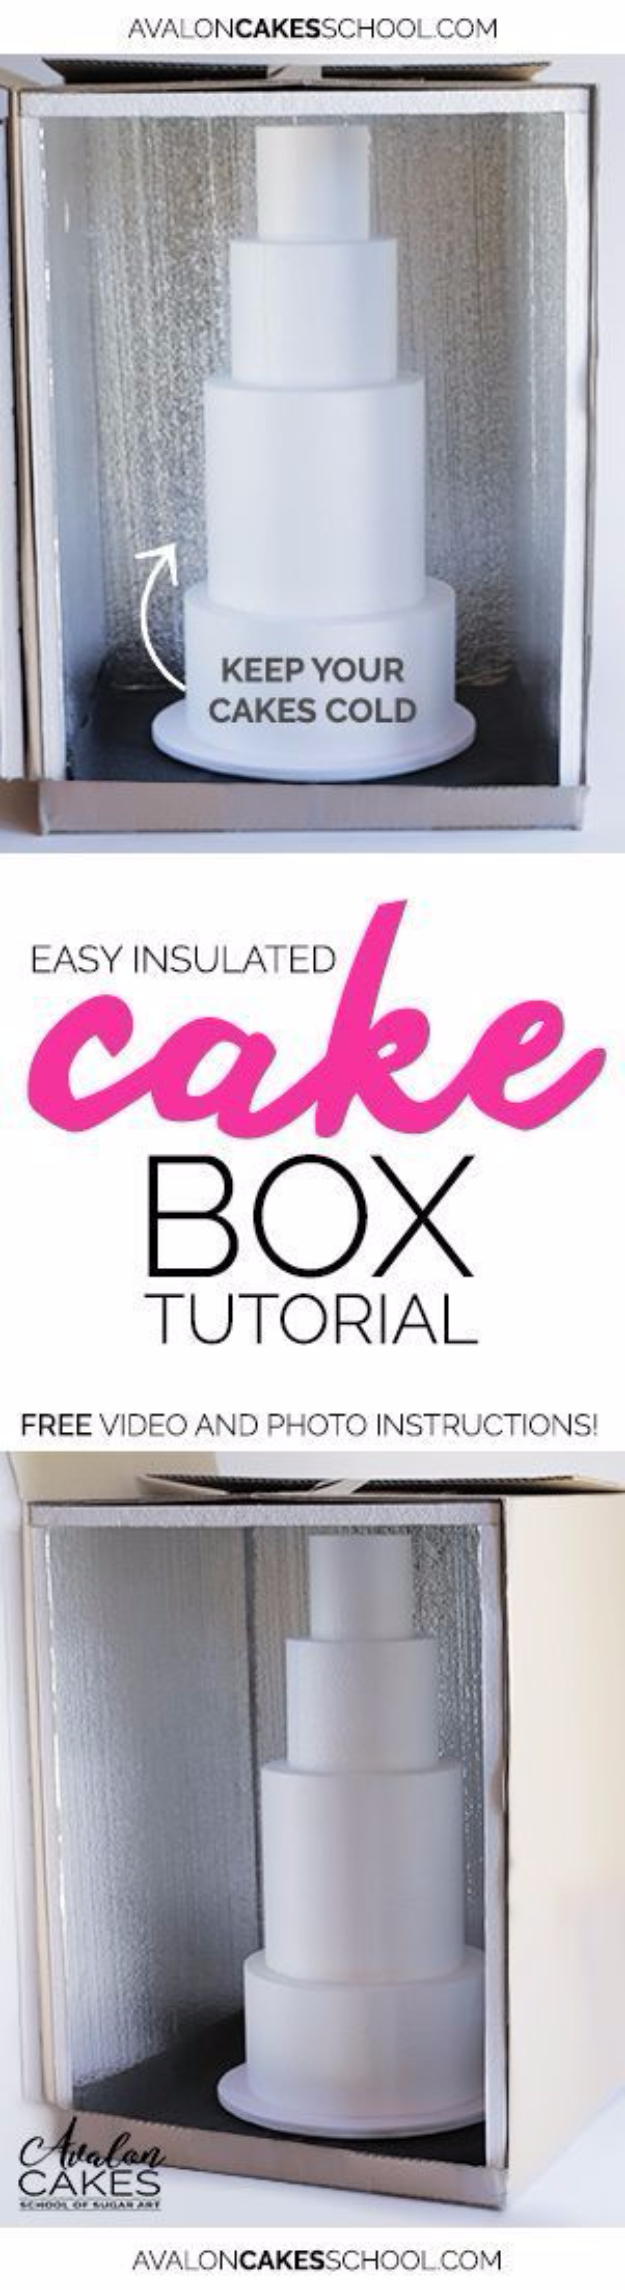 Best Baking Hacks - Easy Insulated Cake Box - DIY Cooking Tips and Tricks for Baking Recipes - Quick Ways to Bake Cake, Cupcakes, Desserts and Cookies - Kitchen Lifehacks for Bakers http://diyjoy.com/baking-hacks